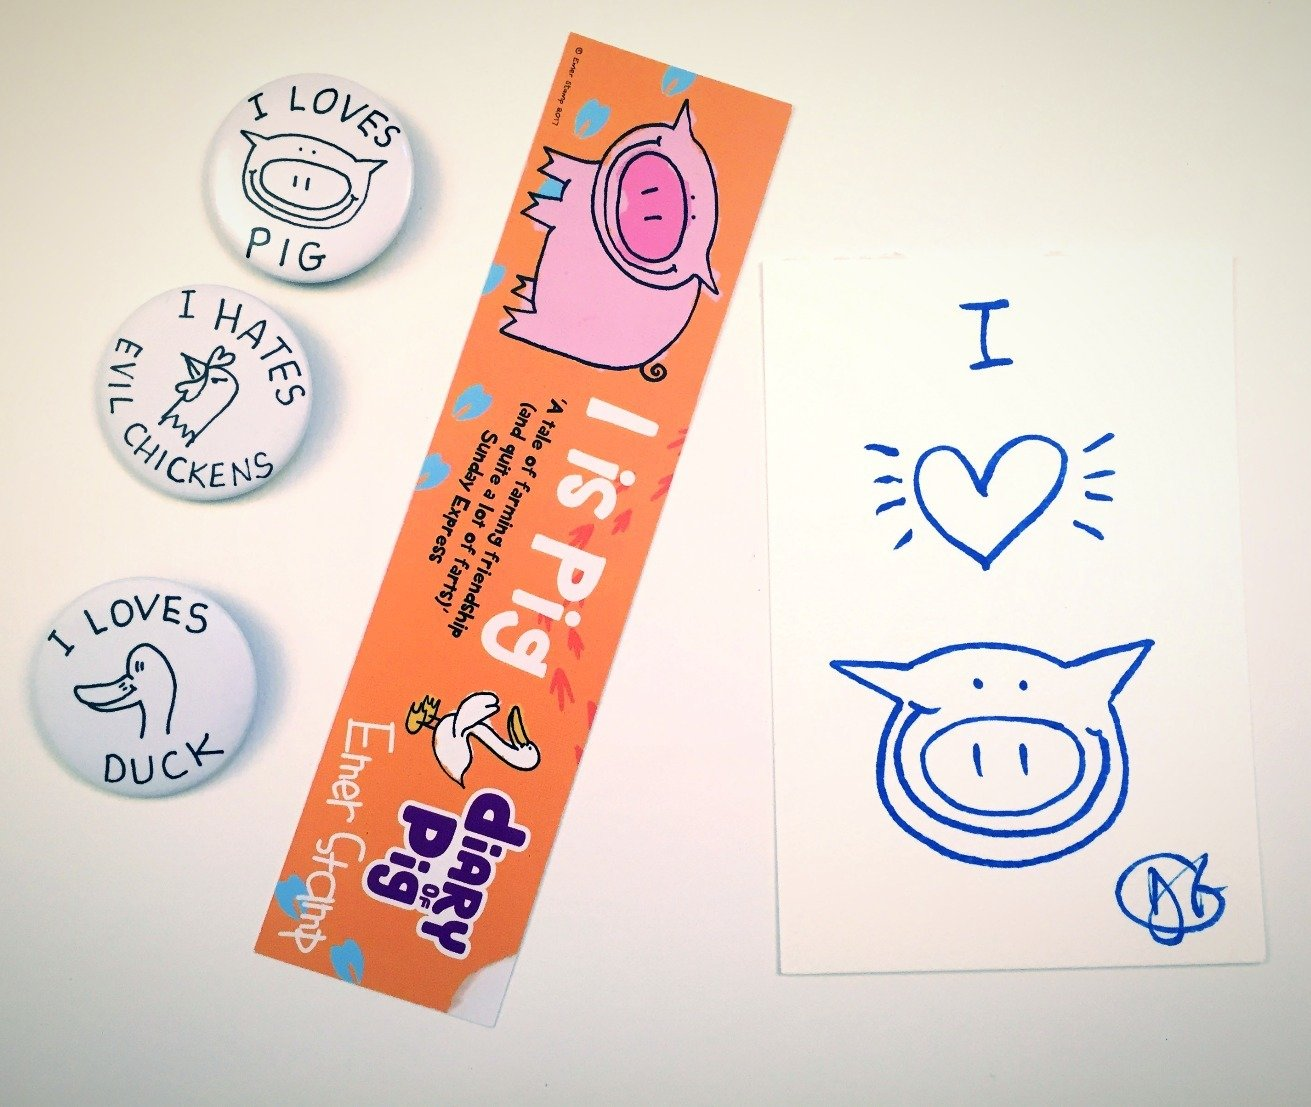 Pig's bookmark and badges